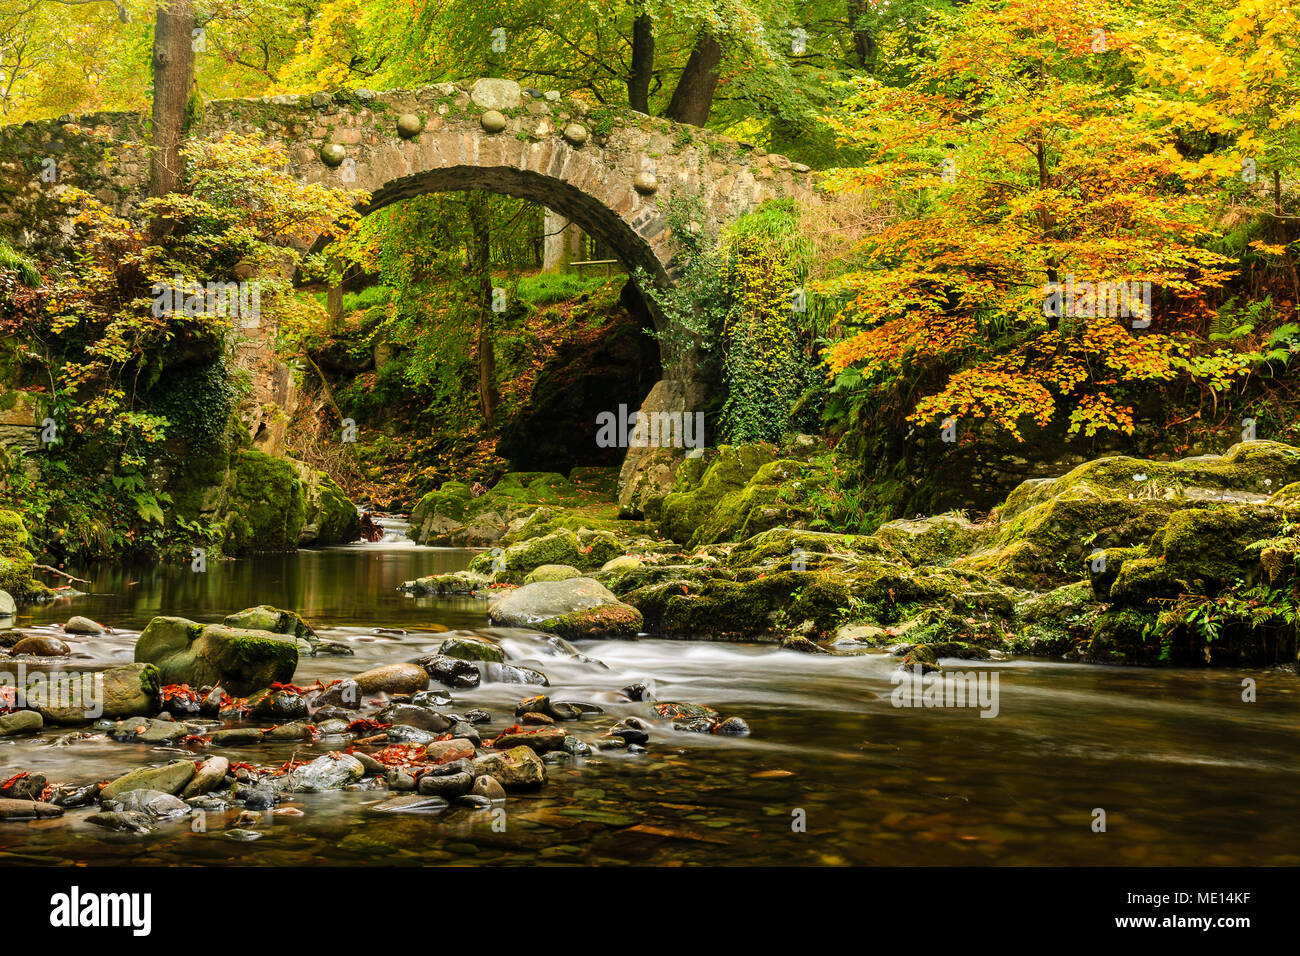 An Autumnal shot of Foley's Bridge over the Shimna River in Tollymore Forest Park in County Down, Ireland. - Stock Image